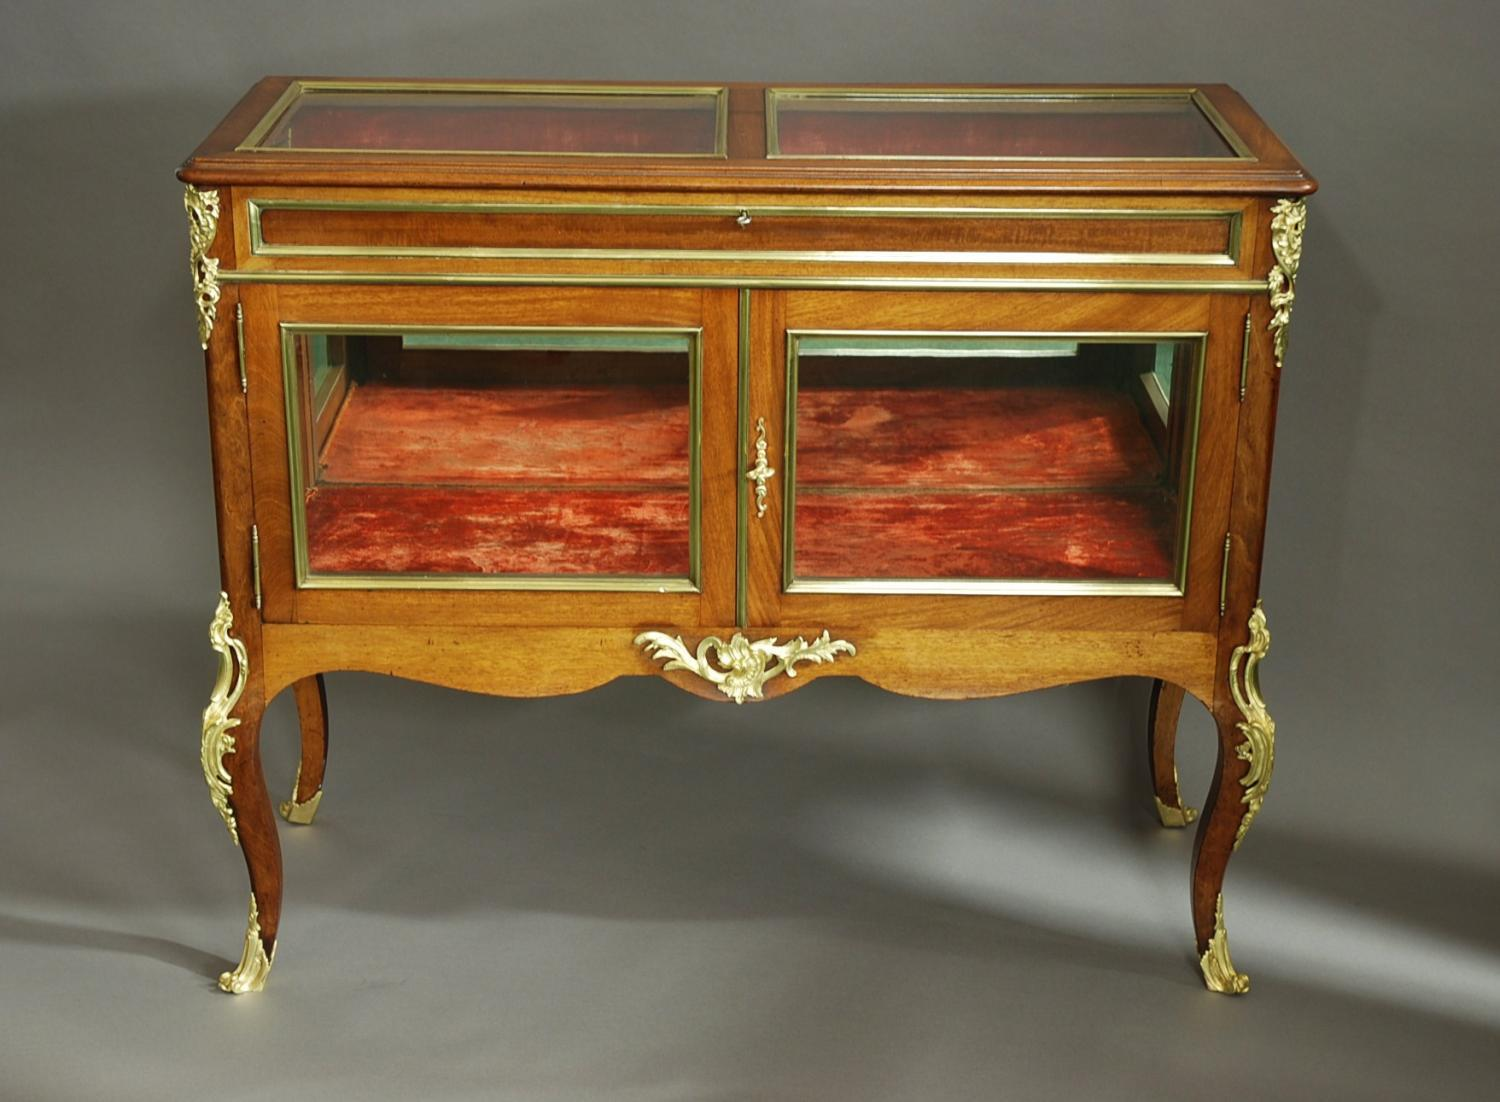 Fine quality late 19thc French display case